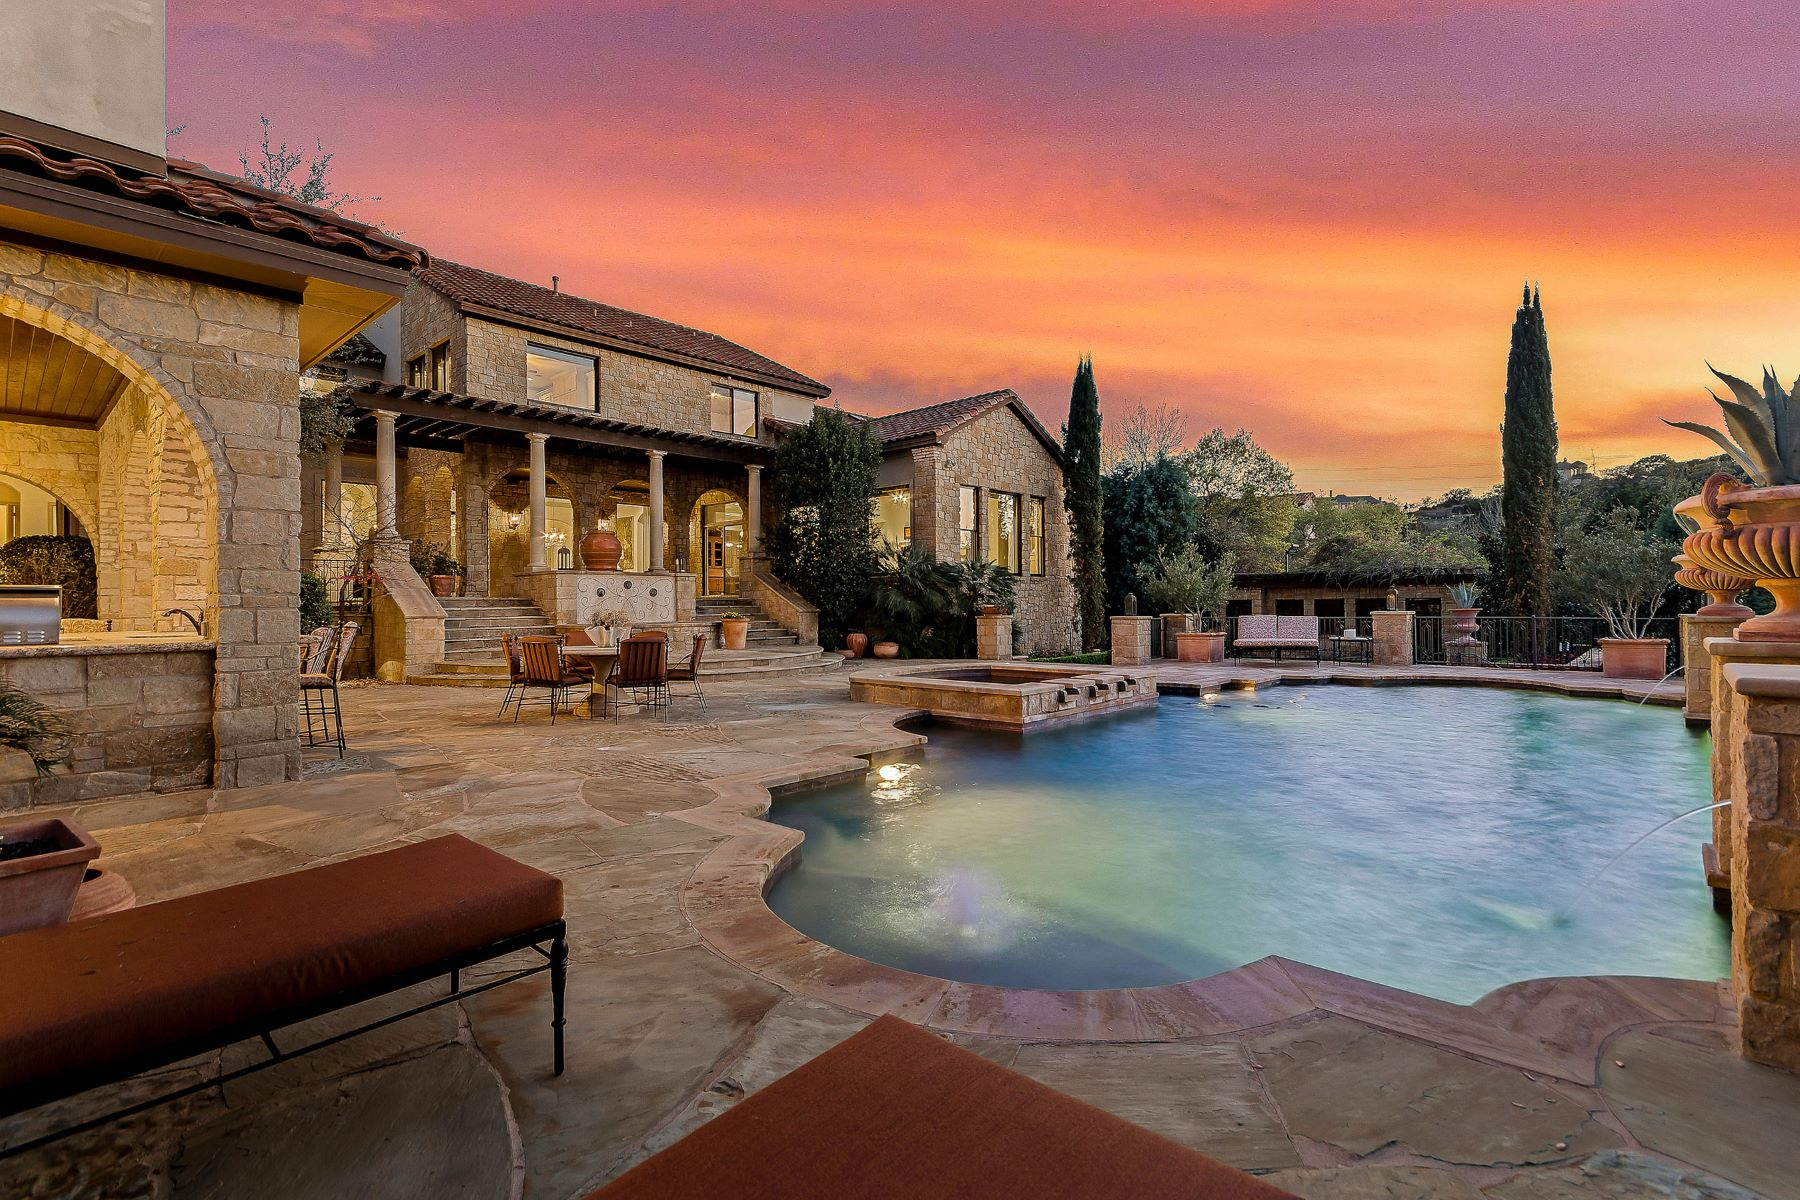 Single Family Home for Sale at Villa with Supreme Amenities and Craftsmanship 216 Brandon Way Austin, Texas 78733 United States